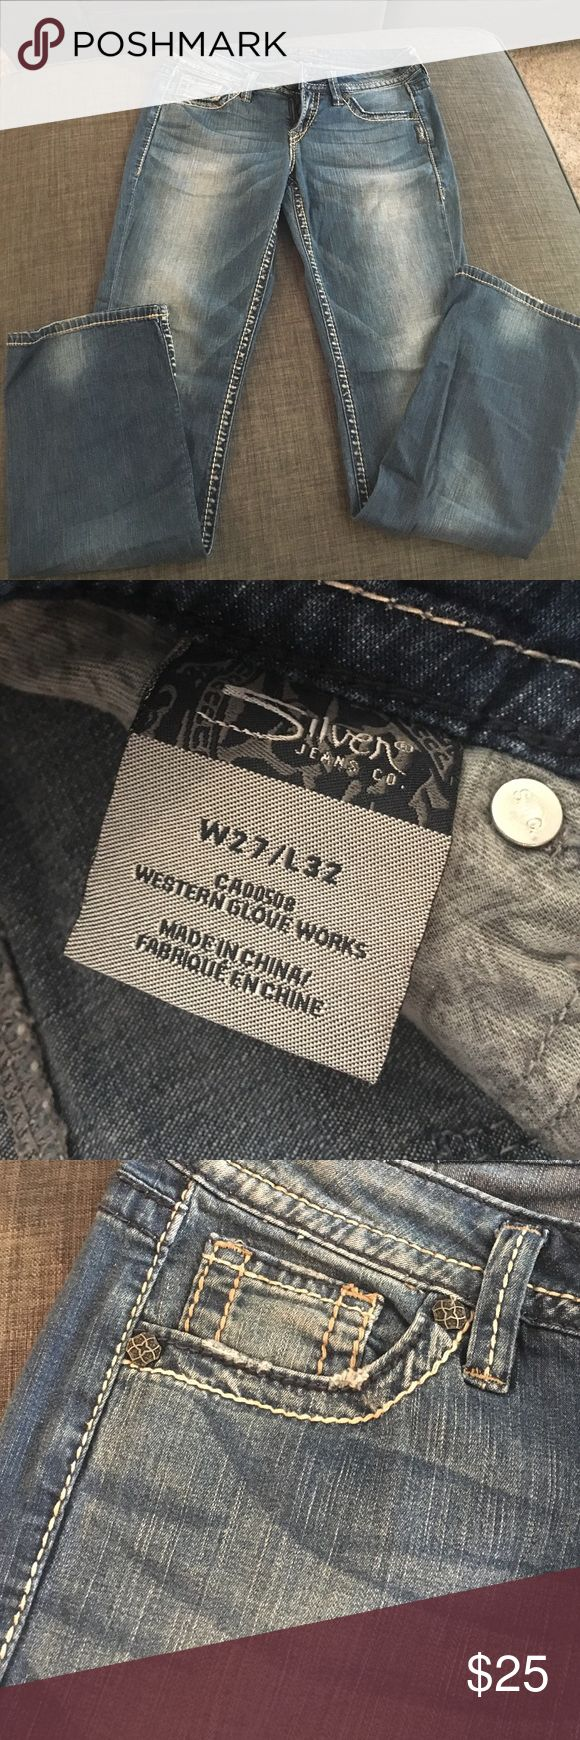 Women's Silver Jeans size 27 Silver Jeans size 27. Lola style length 32. Beautiful back pockets and in good condition. Silver Jeans Pants Straight Leg